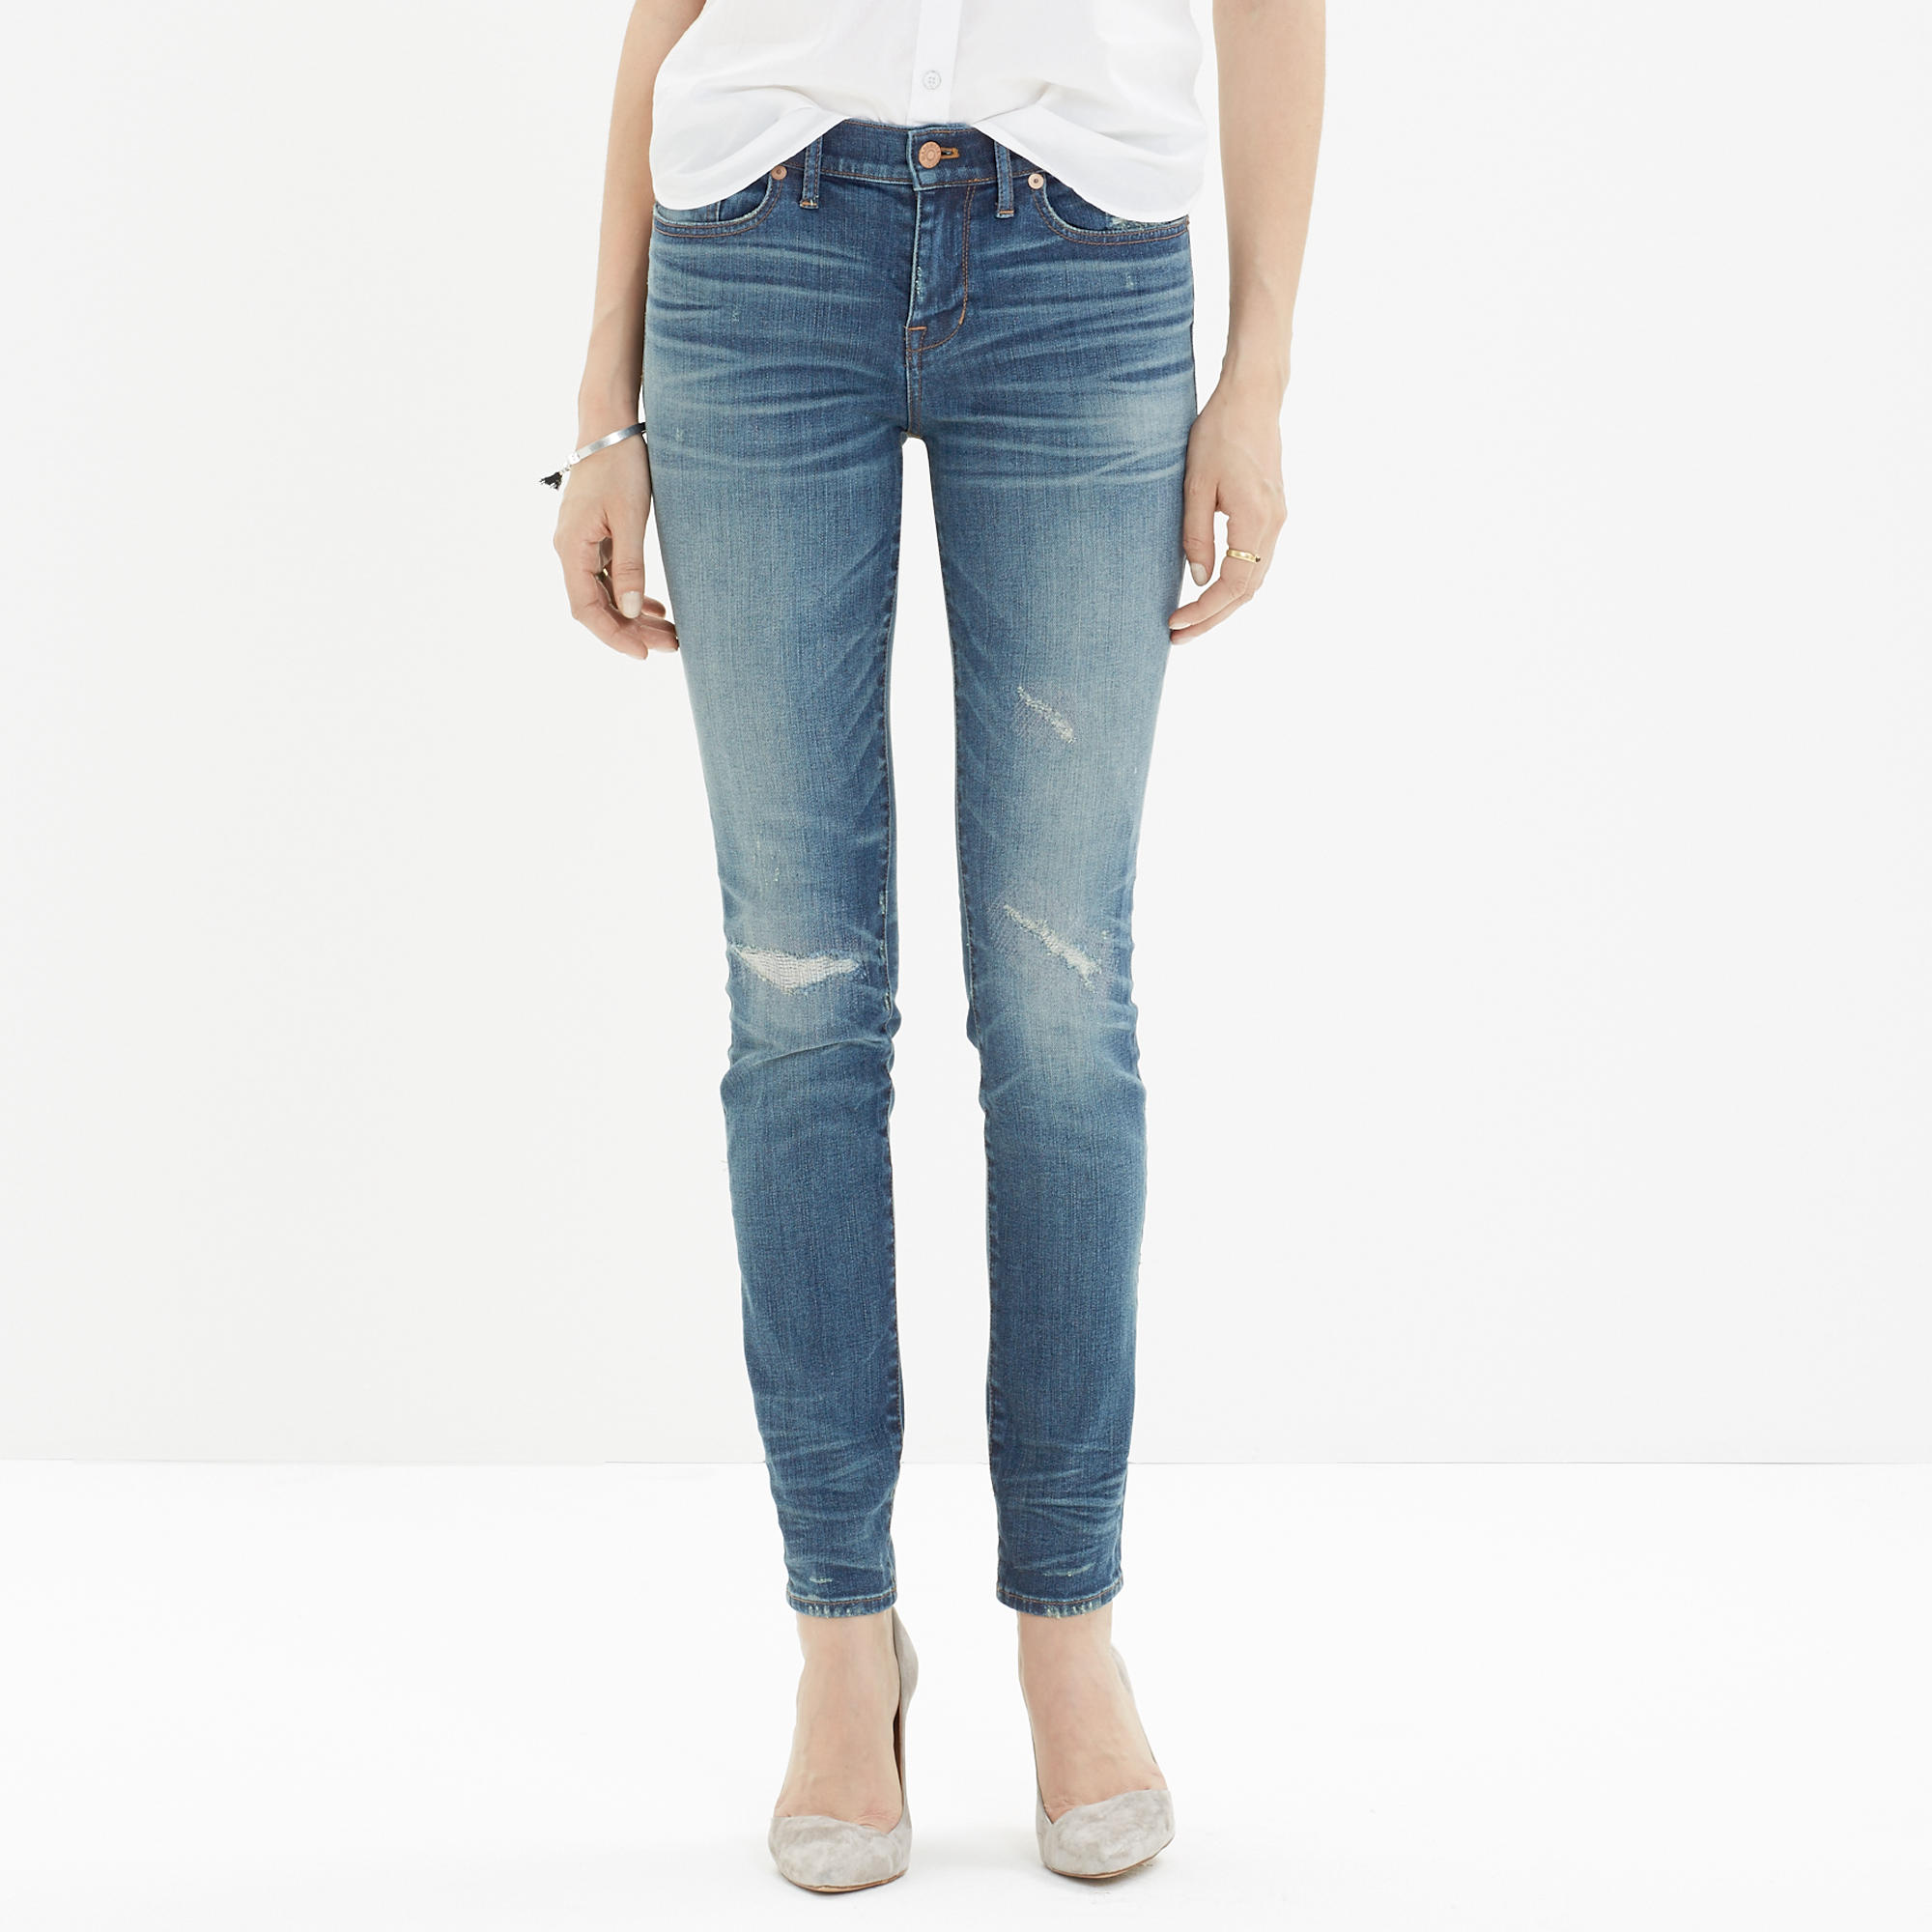 Skinny Skinny Jeans: Rip and Repair Edition : skinny jeans | Madewell